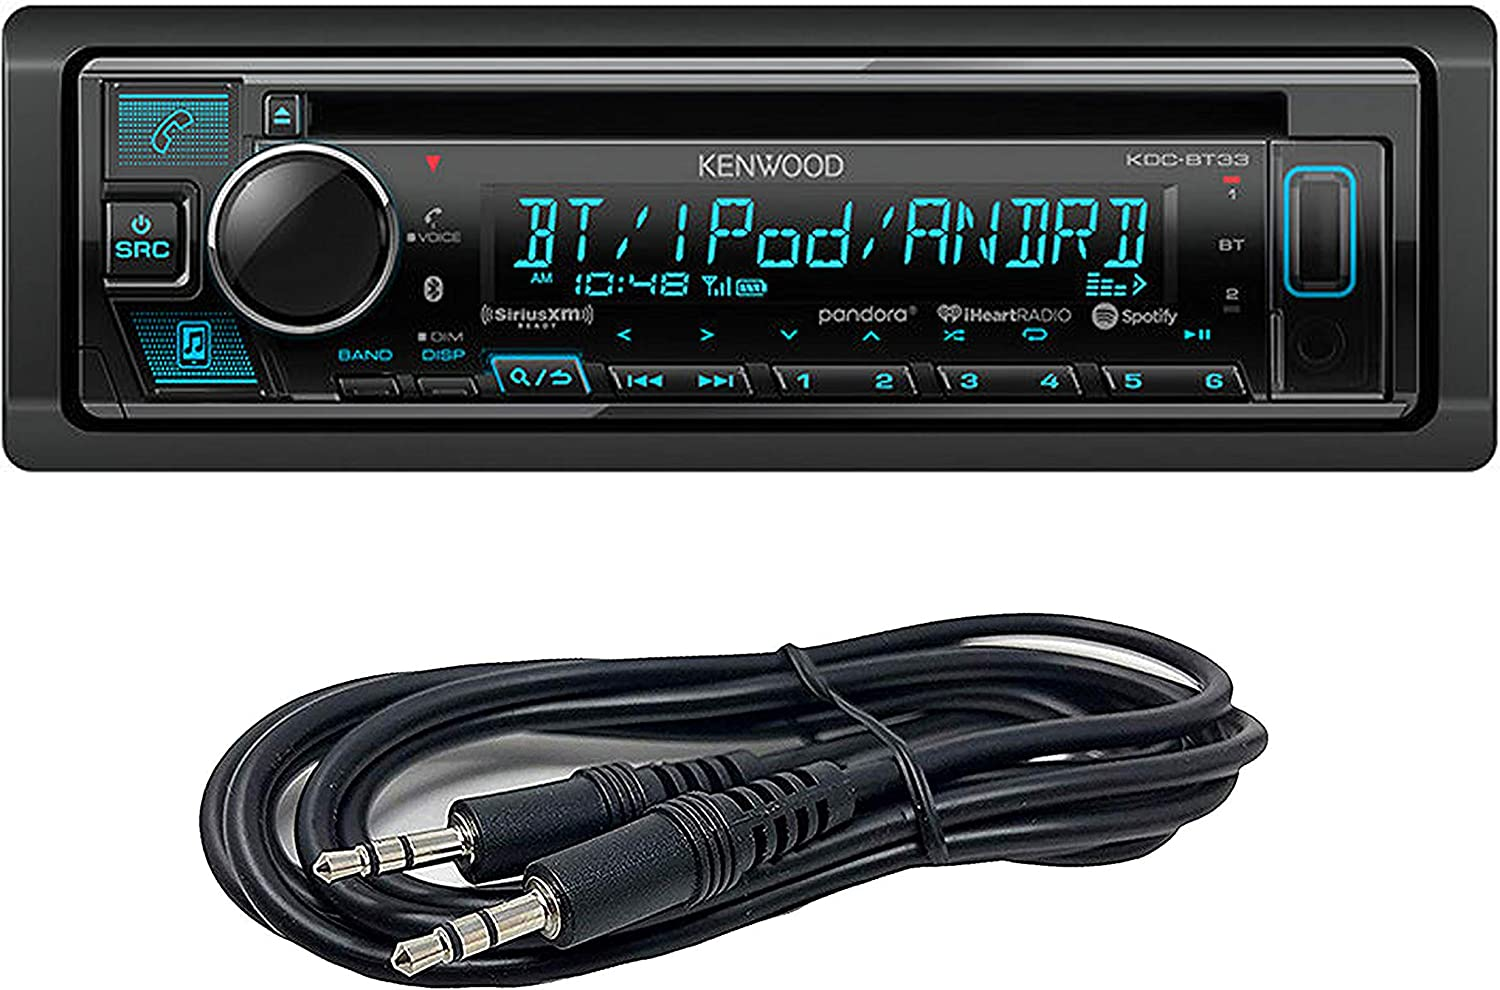 [SCHEMATICS_4JK]  Kenwood KDC-BT555U in-Dash CD/MP3/USB Car Stereo Receiver with Bluetooth:  Amazon.ca: Cell Phones & Accessories | Kenwood Kdc Bt555u Wiring Diagram Cd Reciver Model |  | Amazon.ca